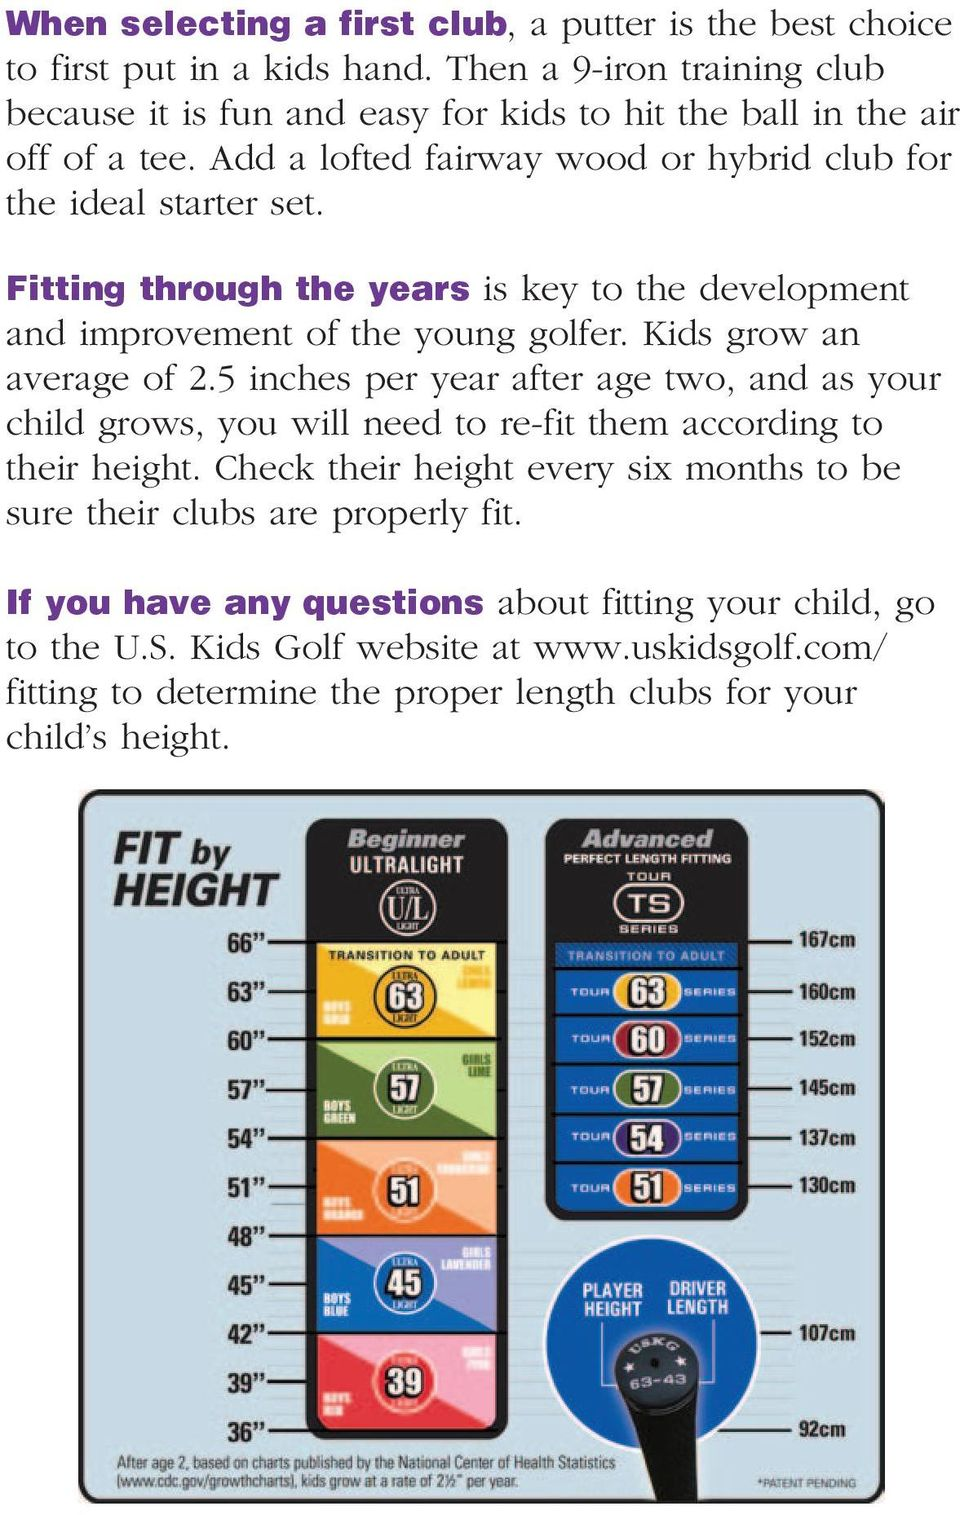 Fitting through the years is key to the development and improvement of the young golfer. Kids grow an average of 2.